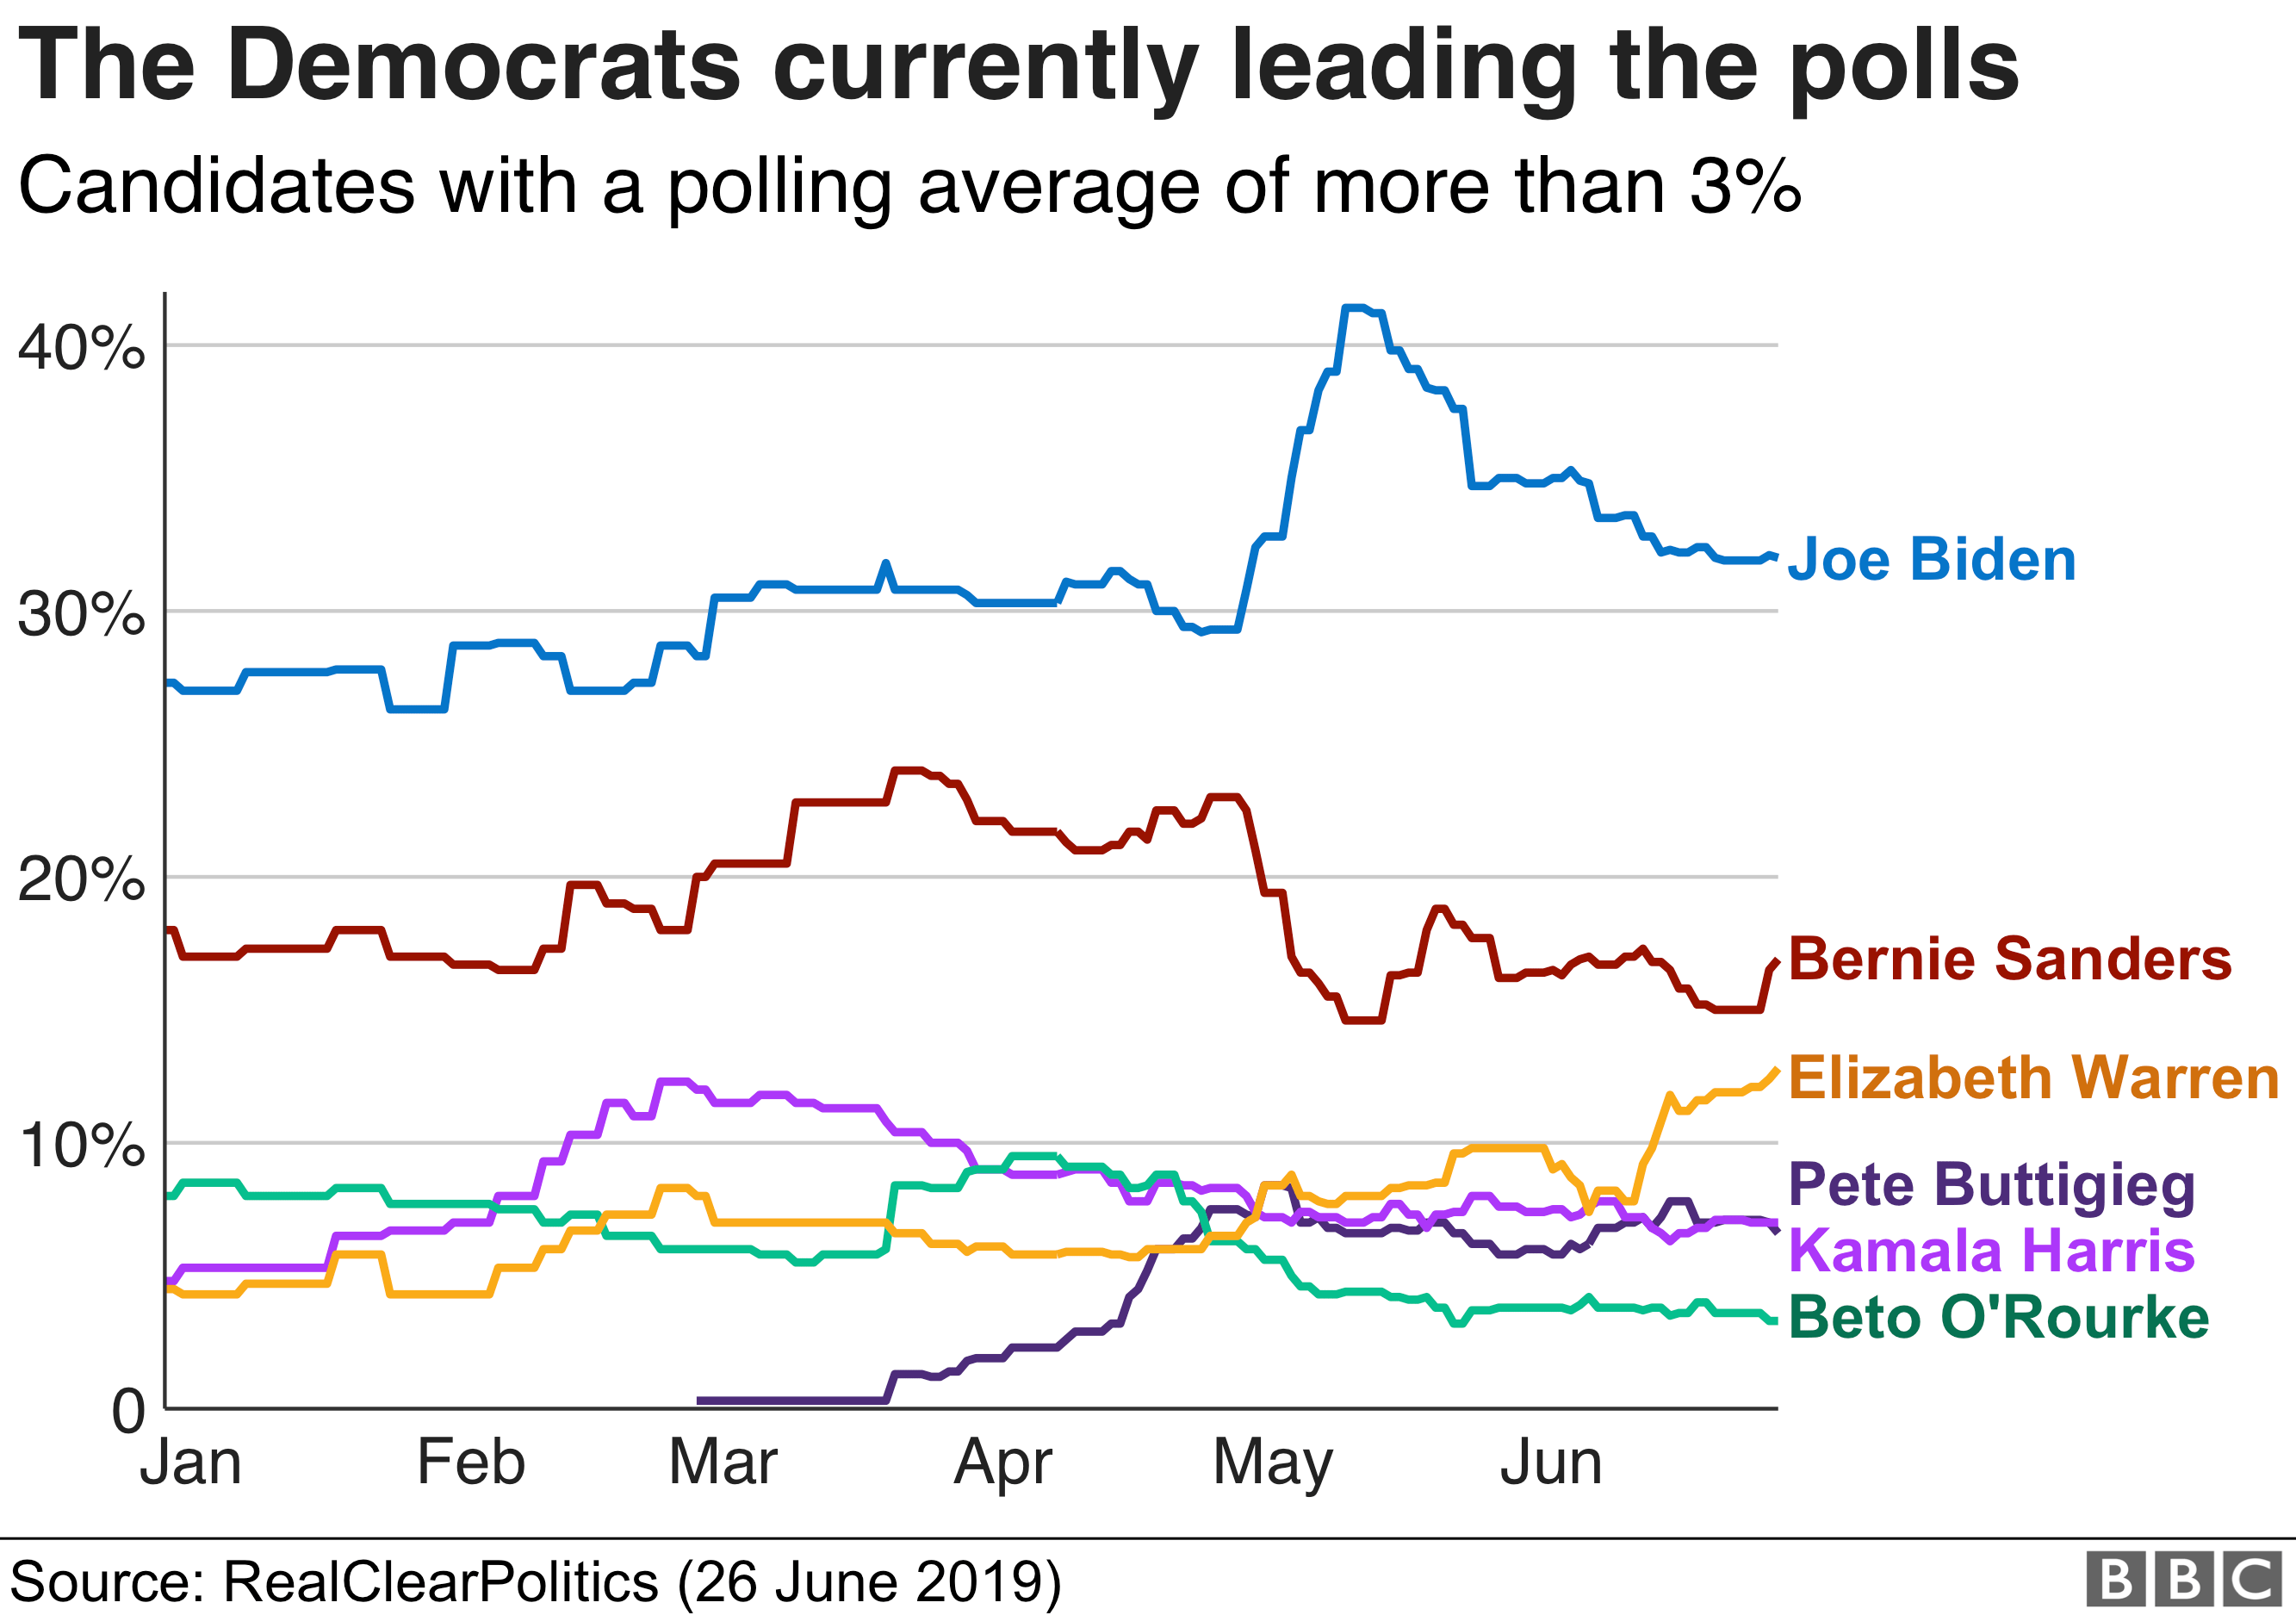 Chart showing the Democrats who are leading in the polls